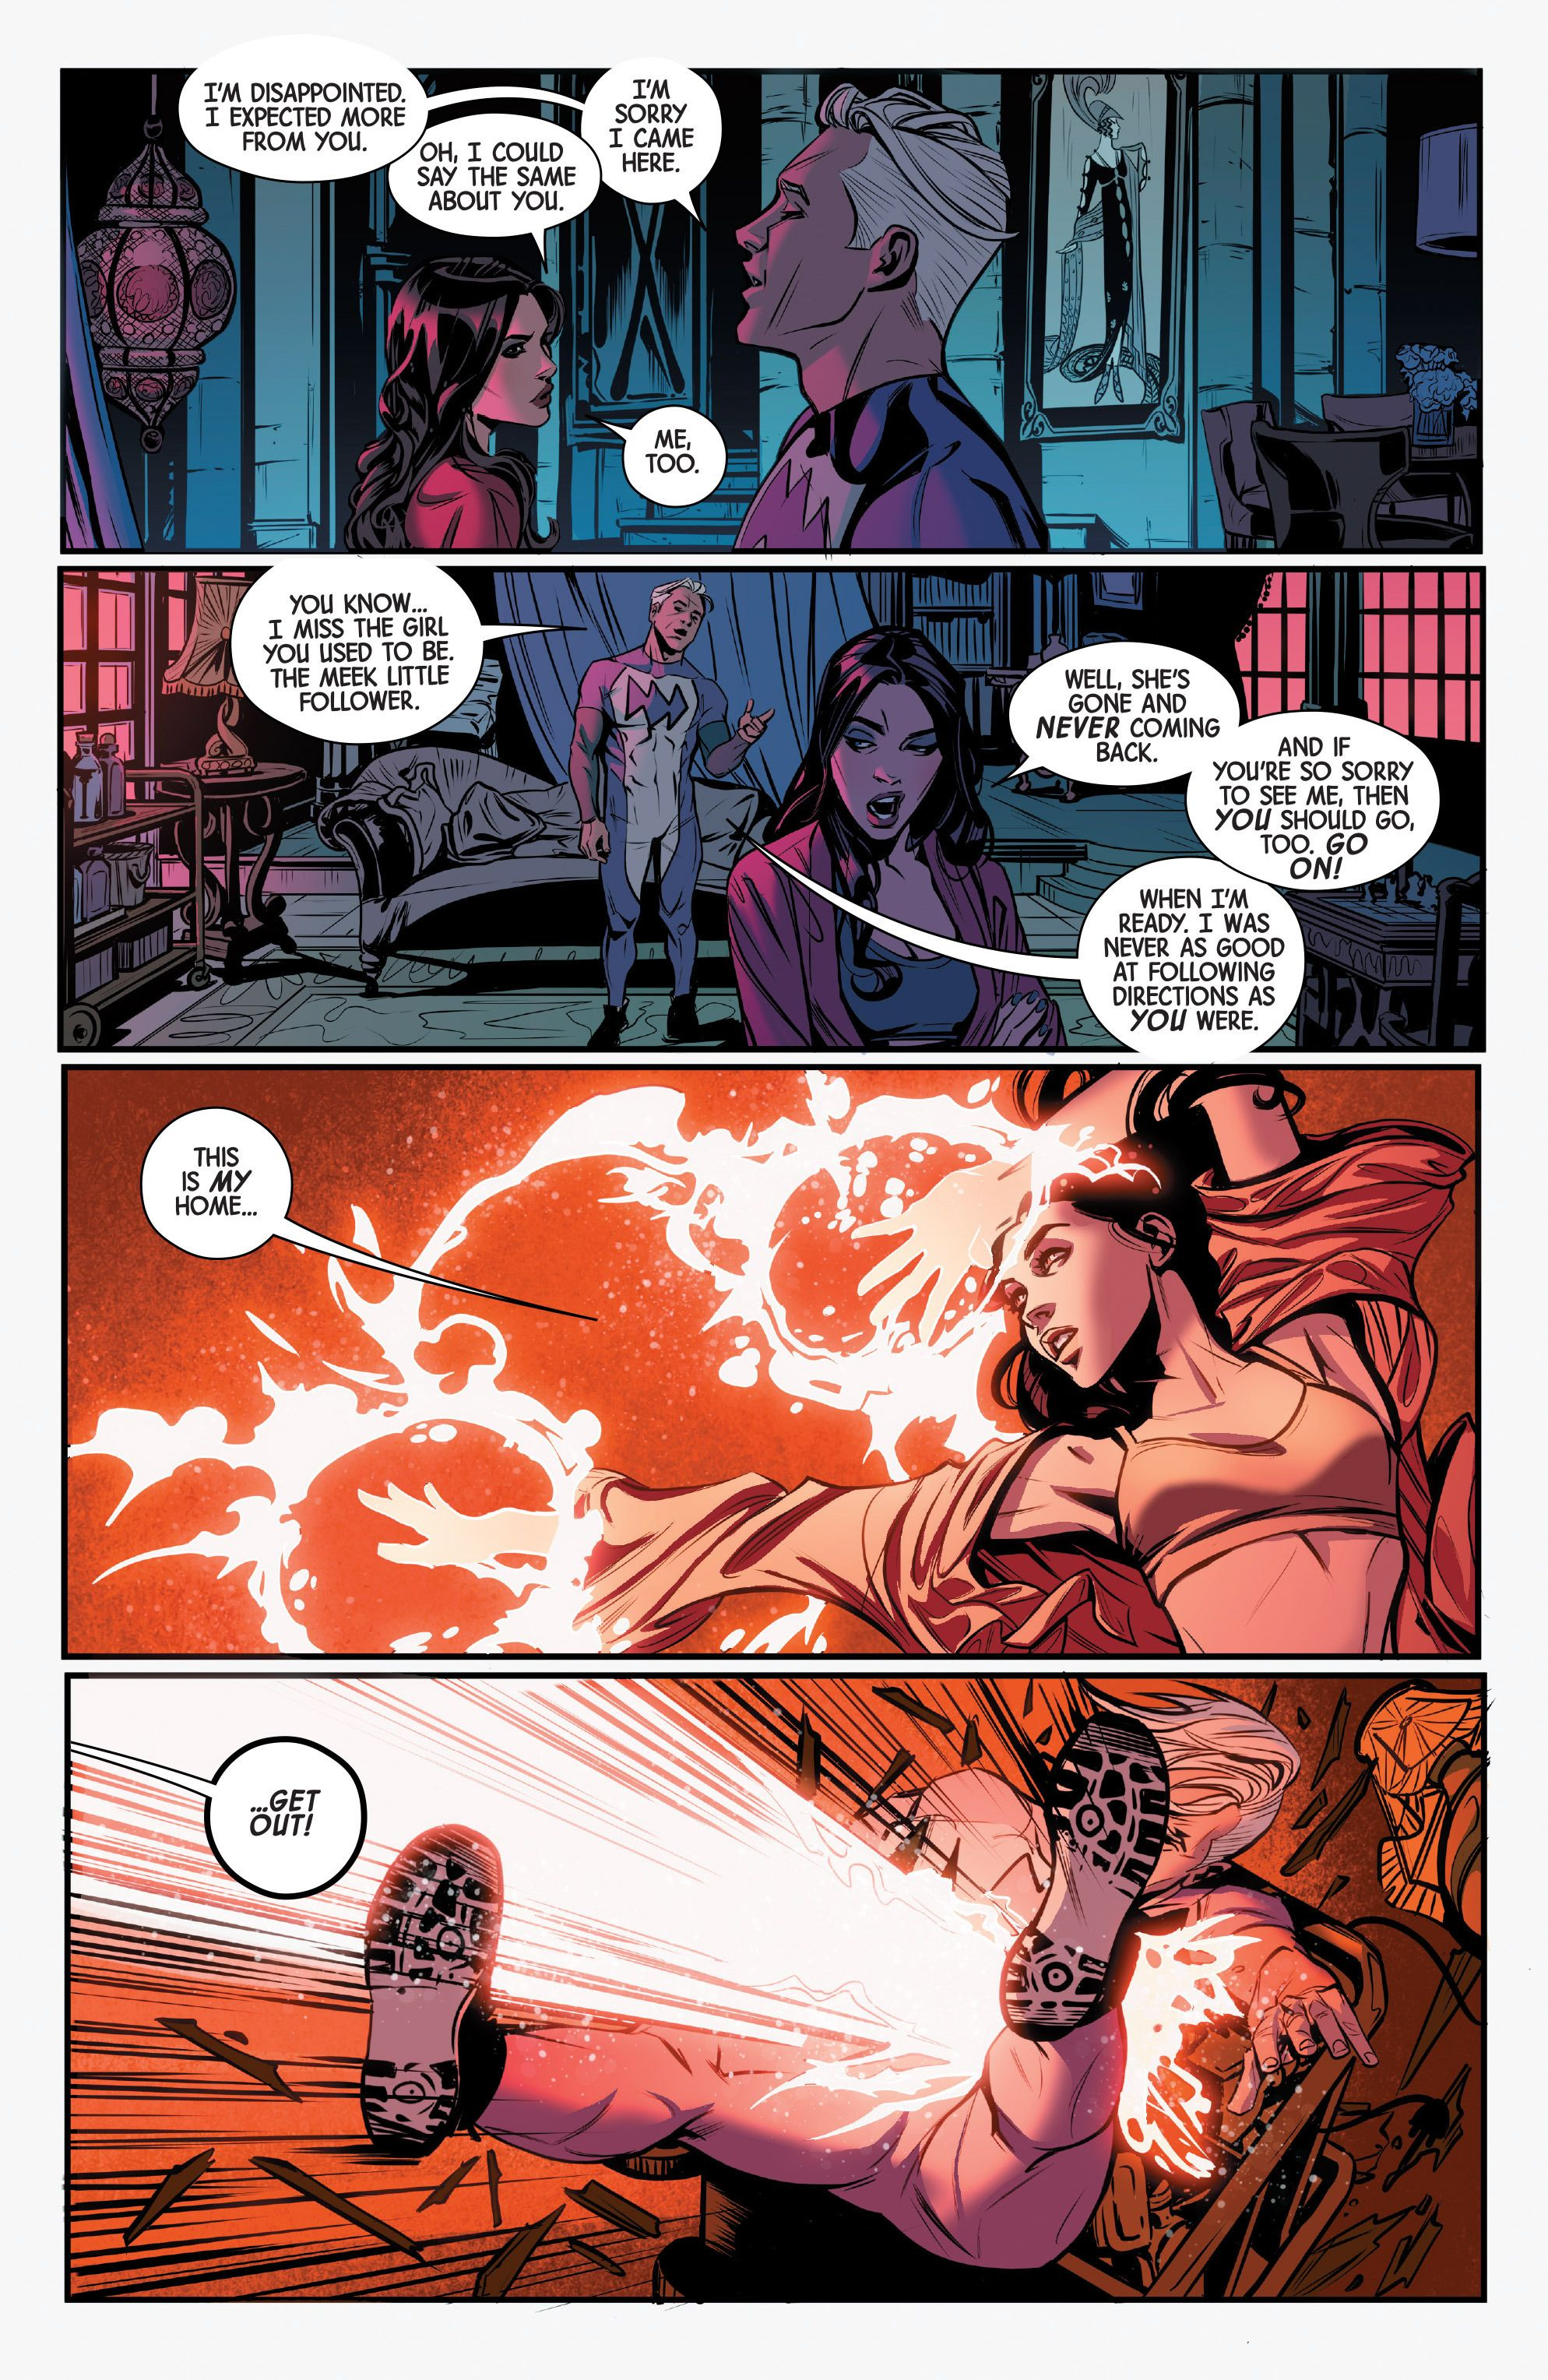 Scarlet Witch 2016 Issue 9 Read Scarlet Witch 2016 Issue 9 Comic Online In High Quality Scarlet Witch Scarlet Witch Marvel Scarlett Witch